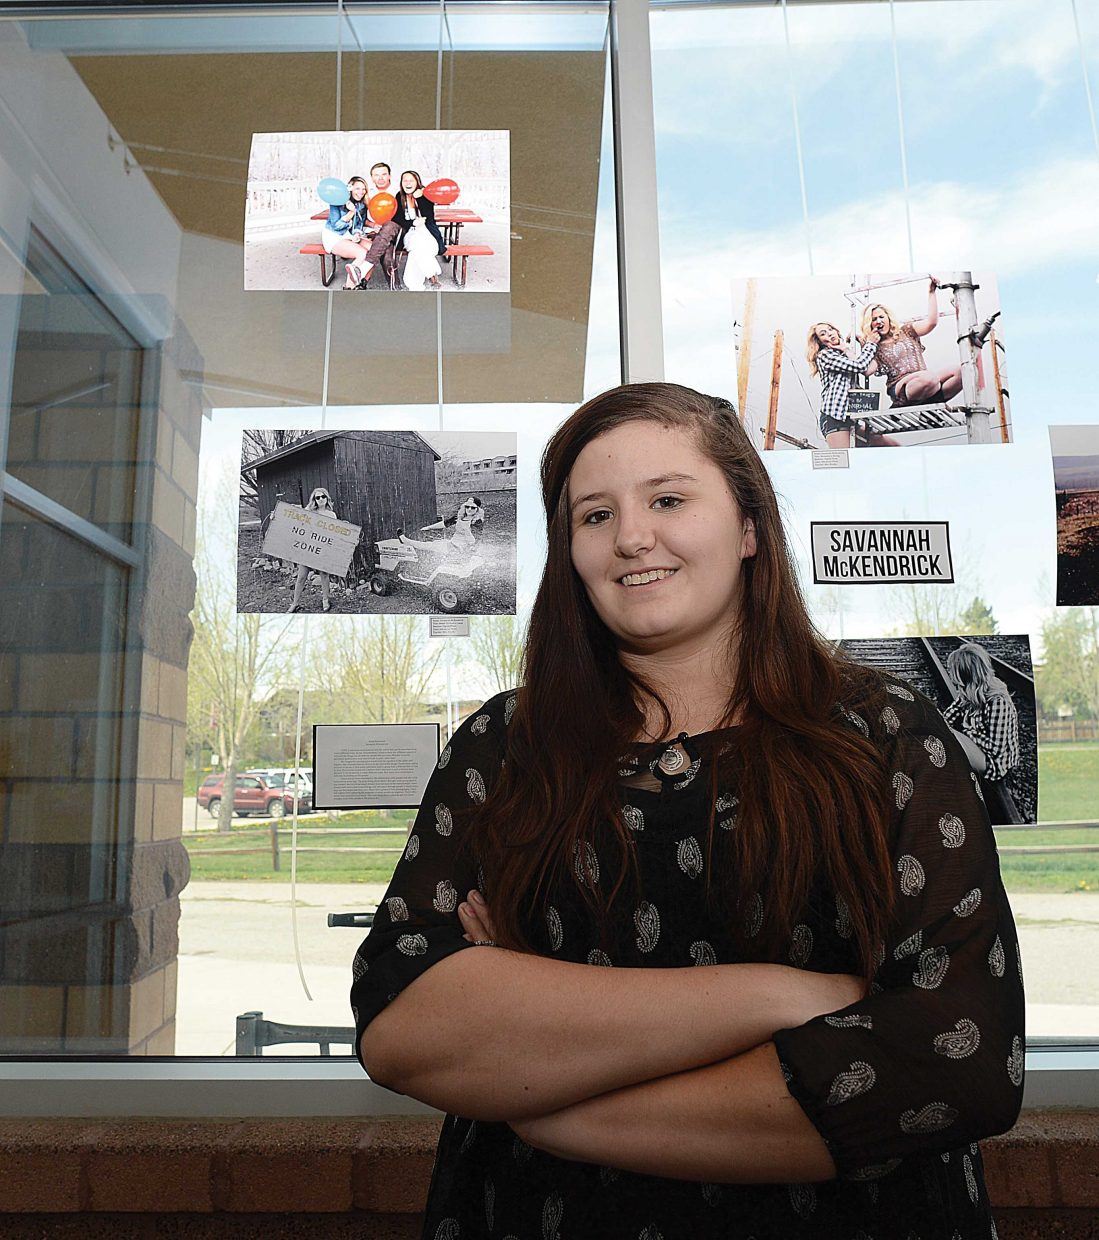 Savannah McKendrick will be the first in her family to go to college, where she'll study under Colorado Mountain College's photography program in Glenwood Springs.